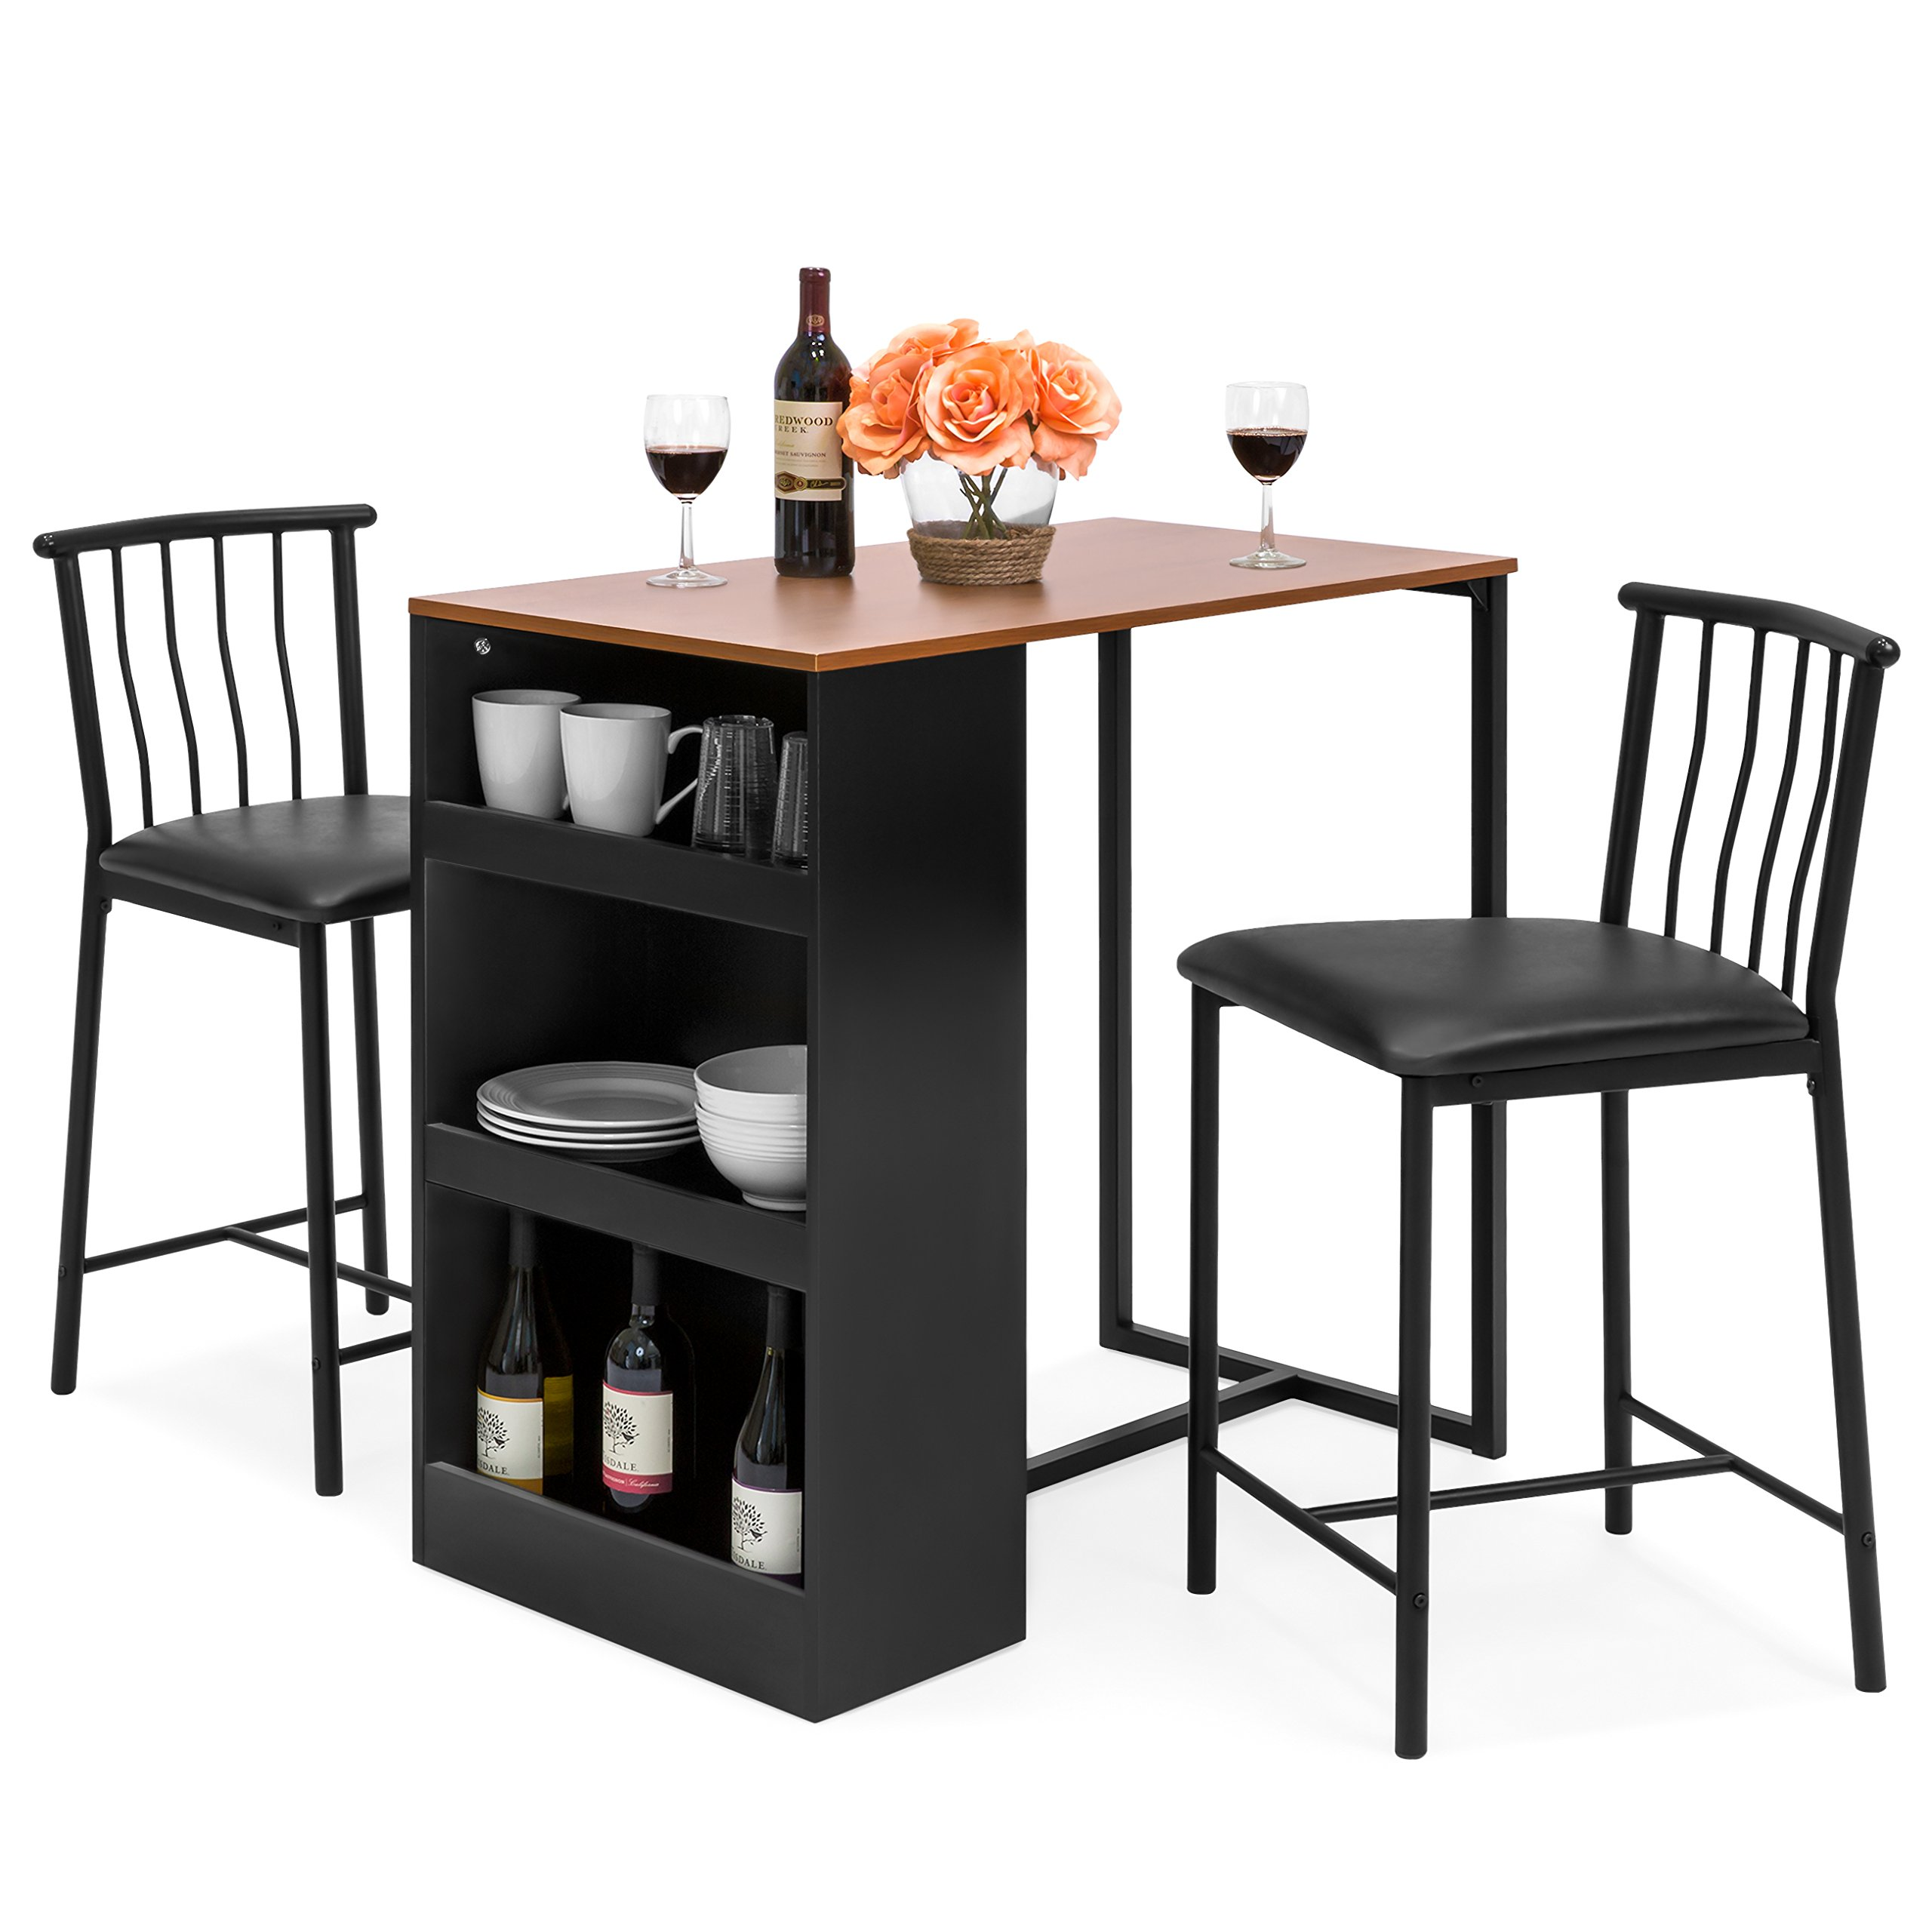 Best Choice Products 36-Inch Wooden Metal Kitchen Counter Height Dining Table Set w/ 2 Stools by Best Choice Products